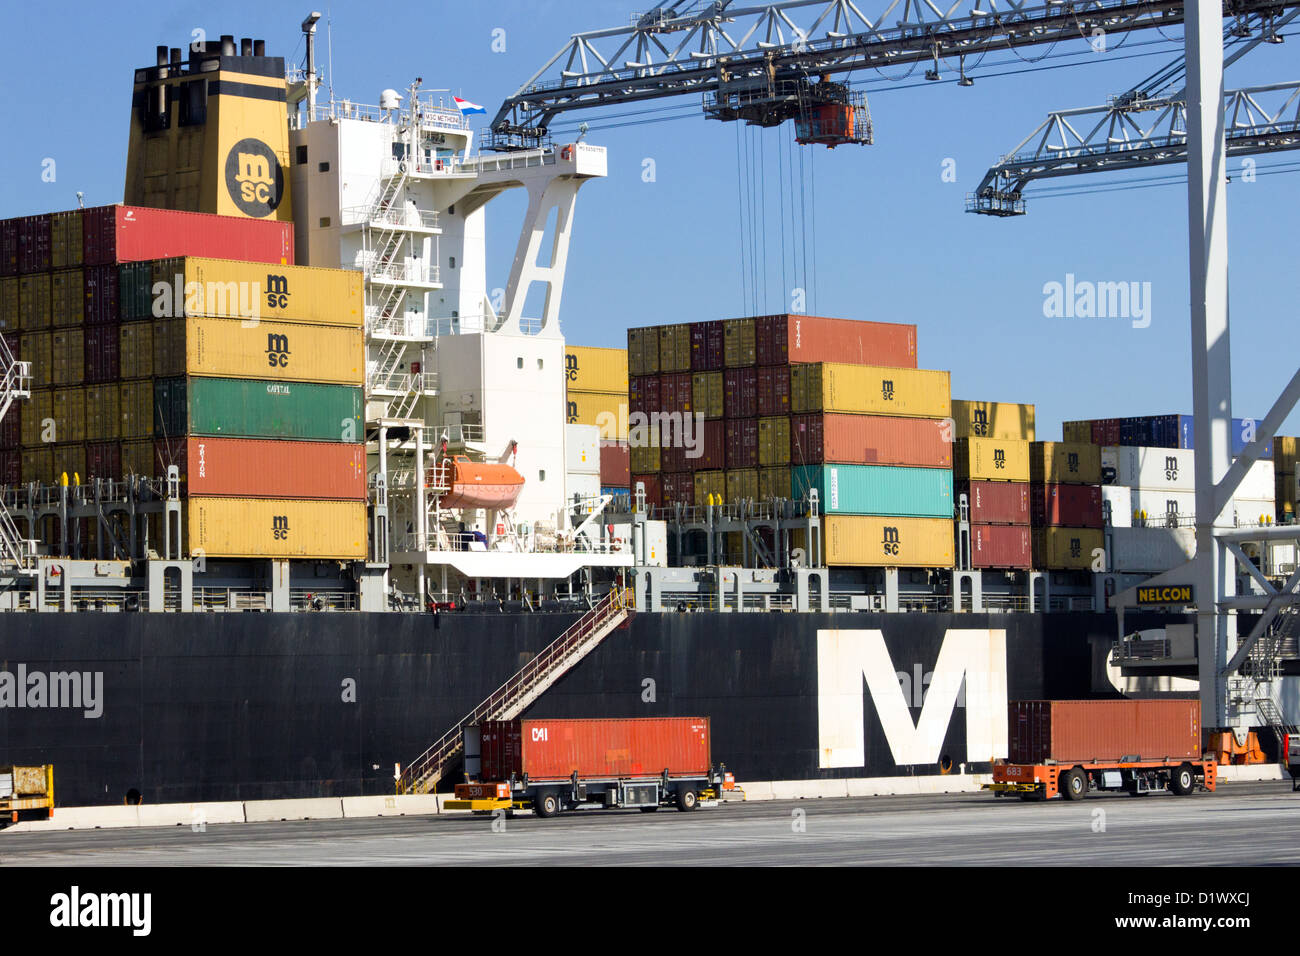 Container ship being loaded at Rotterdam sea port. Stock Photo